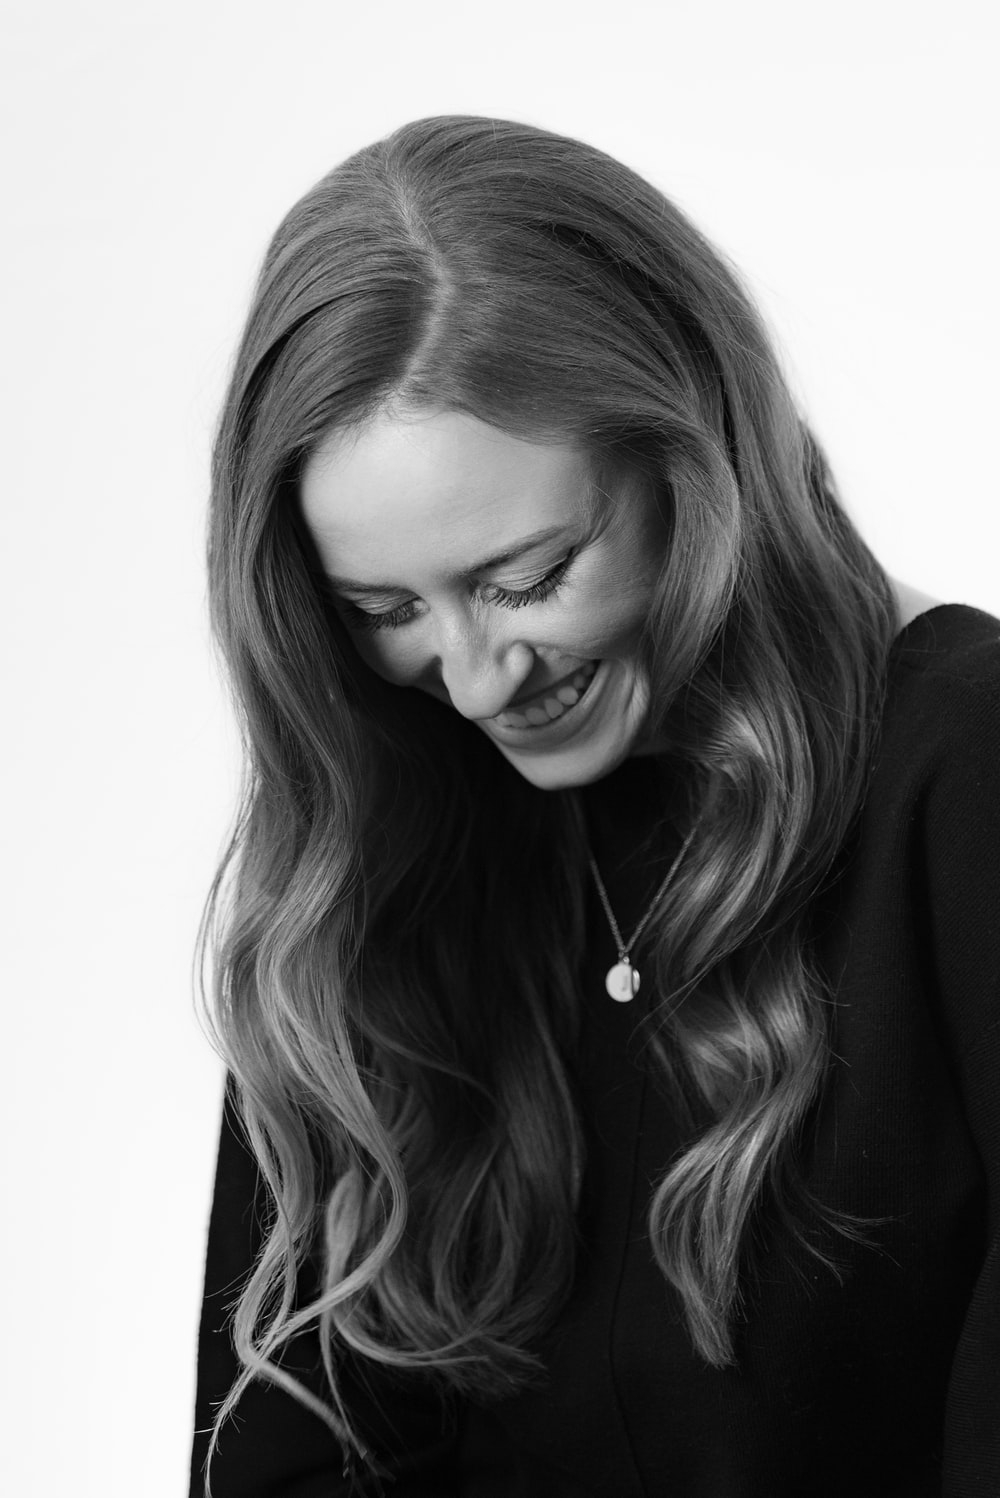 grayscale photography of smiling woman wearing black dress and pendant necklace